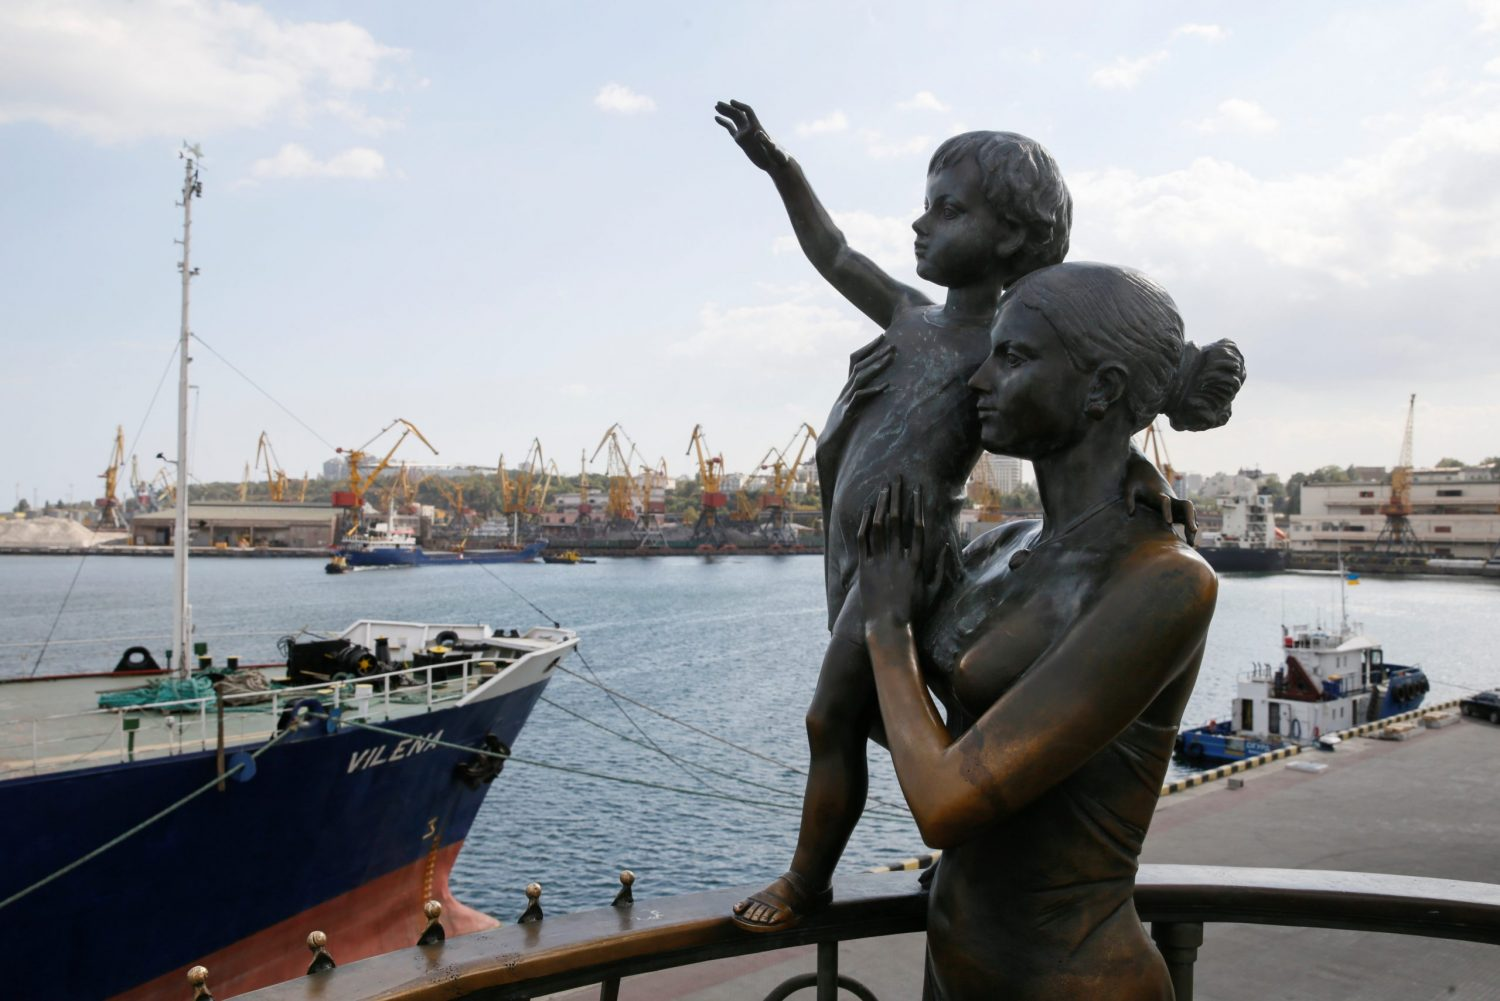 Russia loses leverage as Ukrainian exports go global